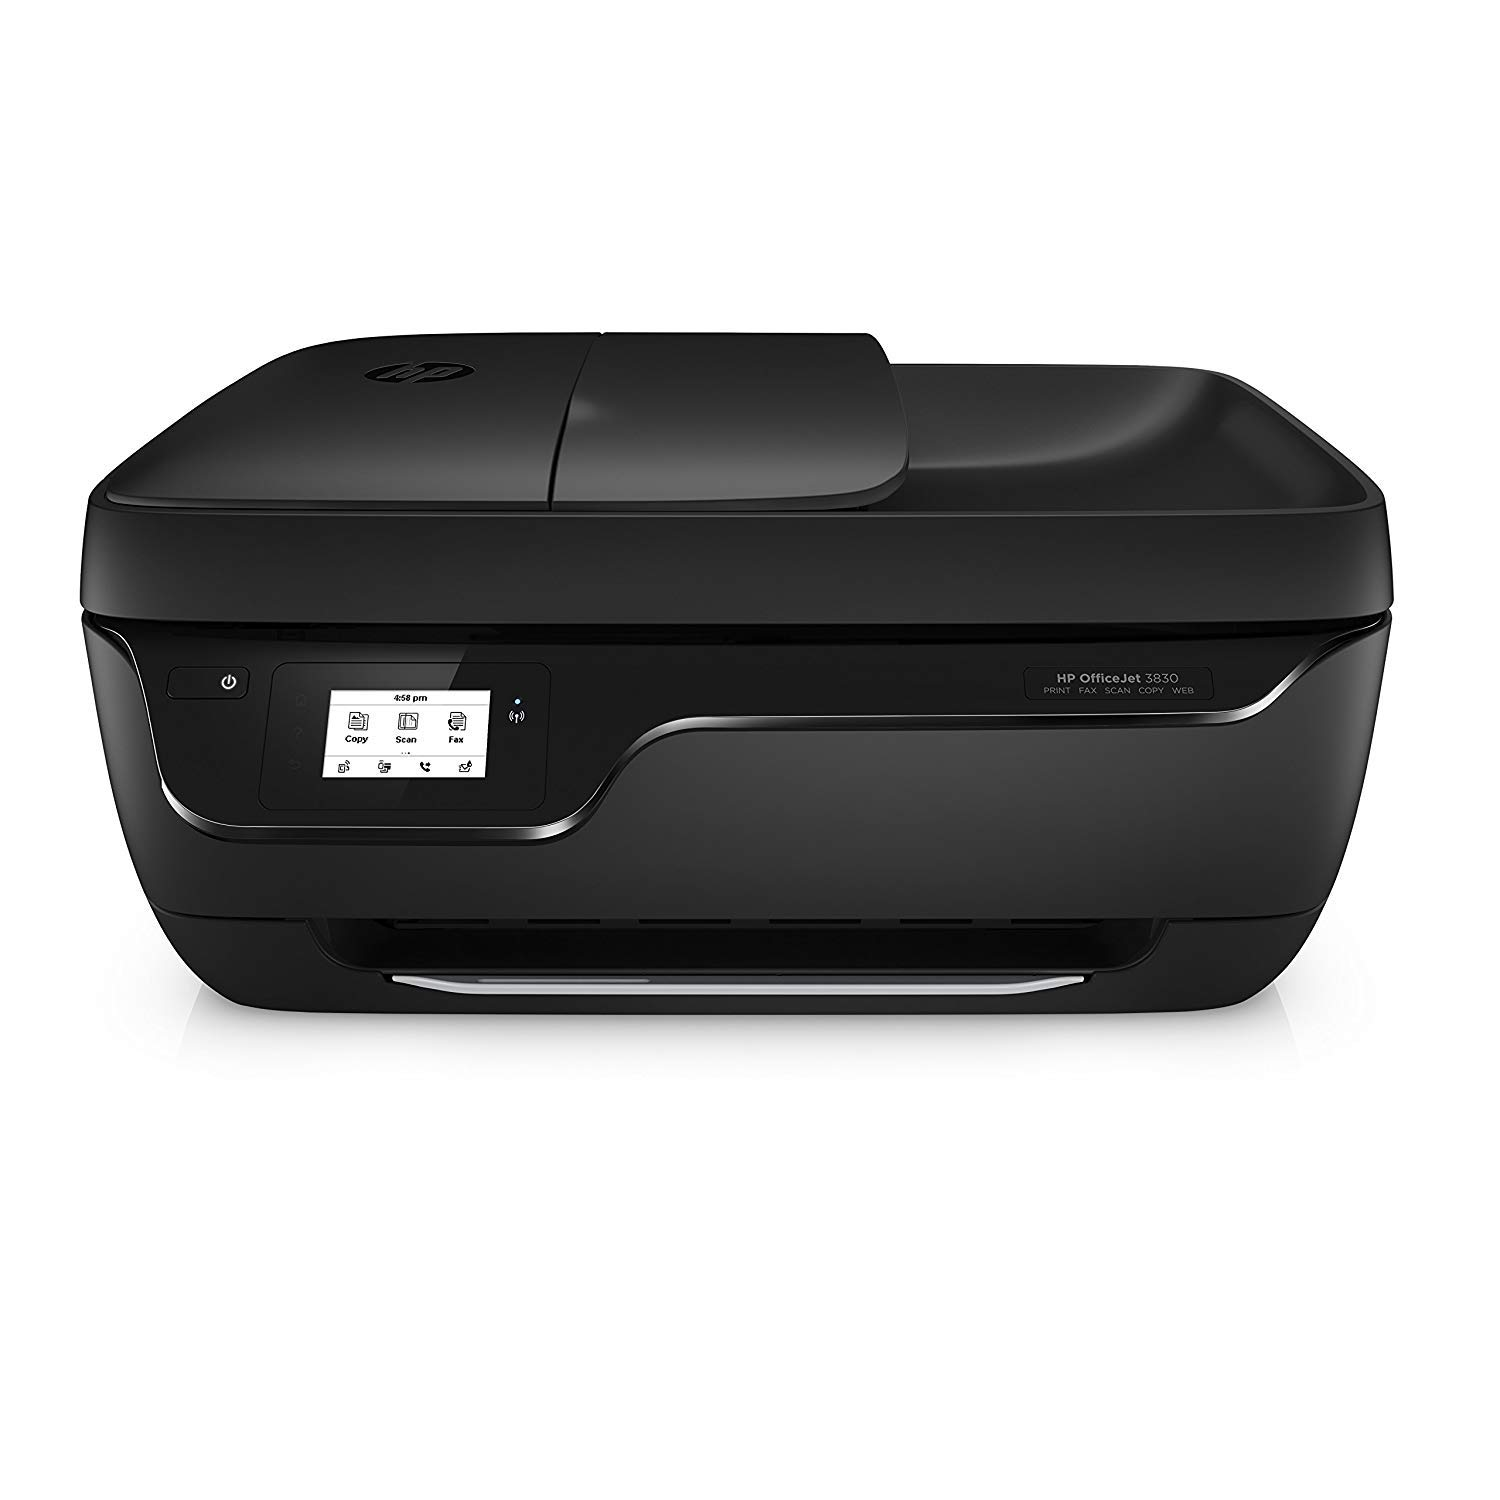 HP OfficeJet 3830 All-in-One Wireless Printer, HP Instant Ink & Amazon Dash Replenishment ready (K7V40A) by HP